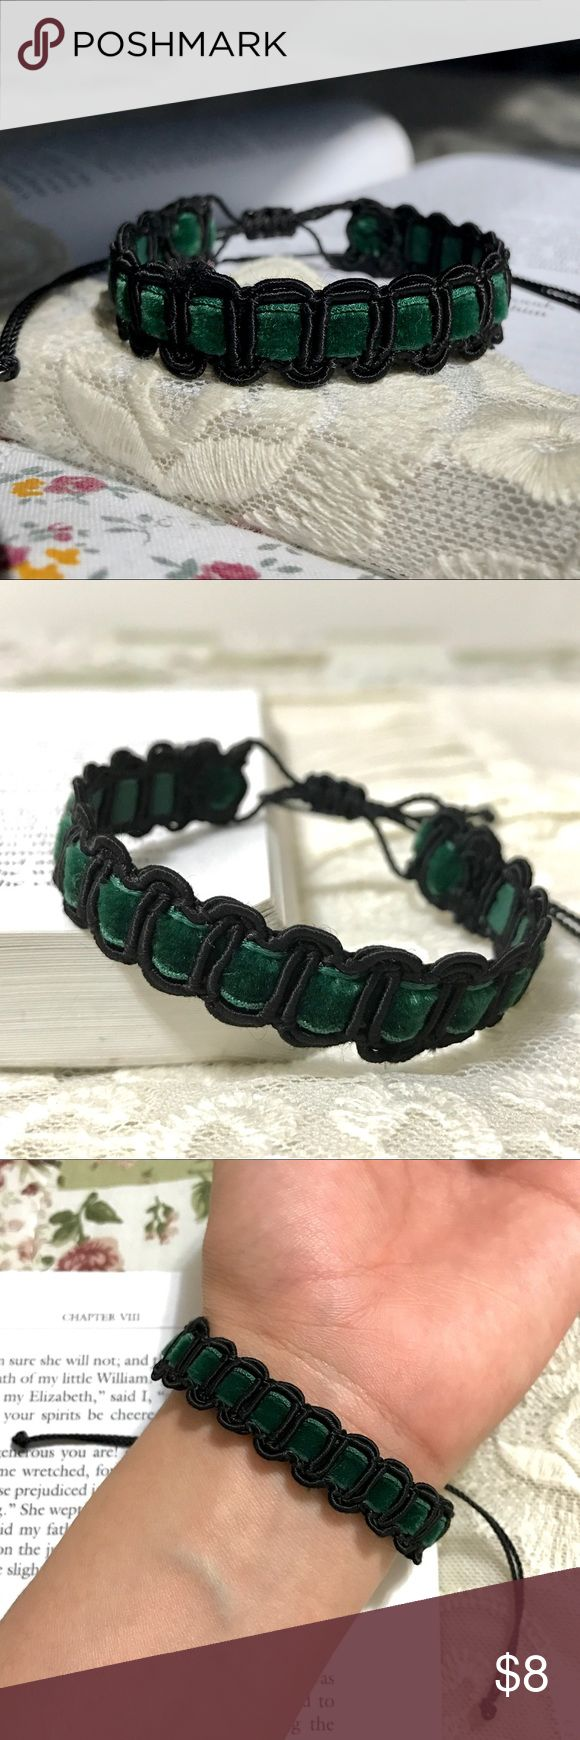 "Victorian Forest Emerald Velvet Woven Bracelet 10% DISCOUNT USING ""ADD TO BUNDLE"" BUTTON ⇨ Get a FREE Bracelet!  •Handmade by me!   •This fancy Victorian look bracelet is made w/ forest green velvet ribbon that runs through a black gimp trim. Finished with a nylon thread closure knot for a secure fit. Lovely vintage style!  •ⓢⓘⓩⓔ: Adjustable knot (fits any size)…"